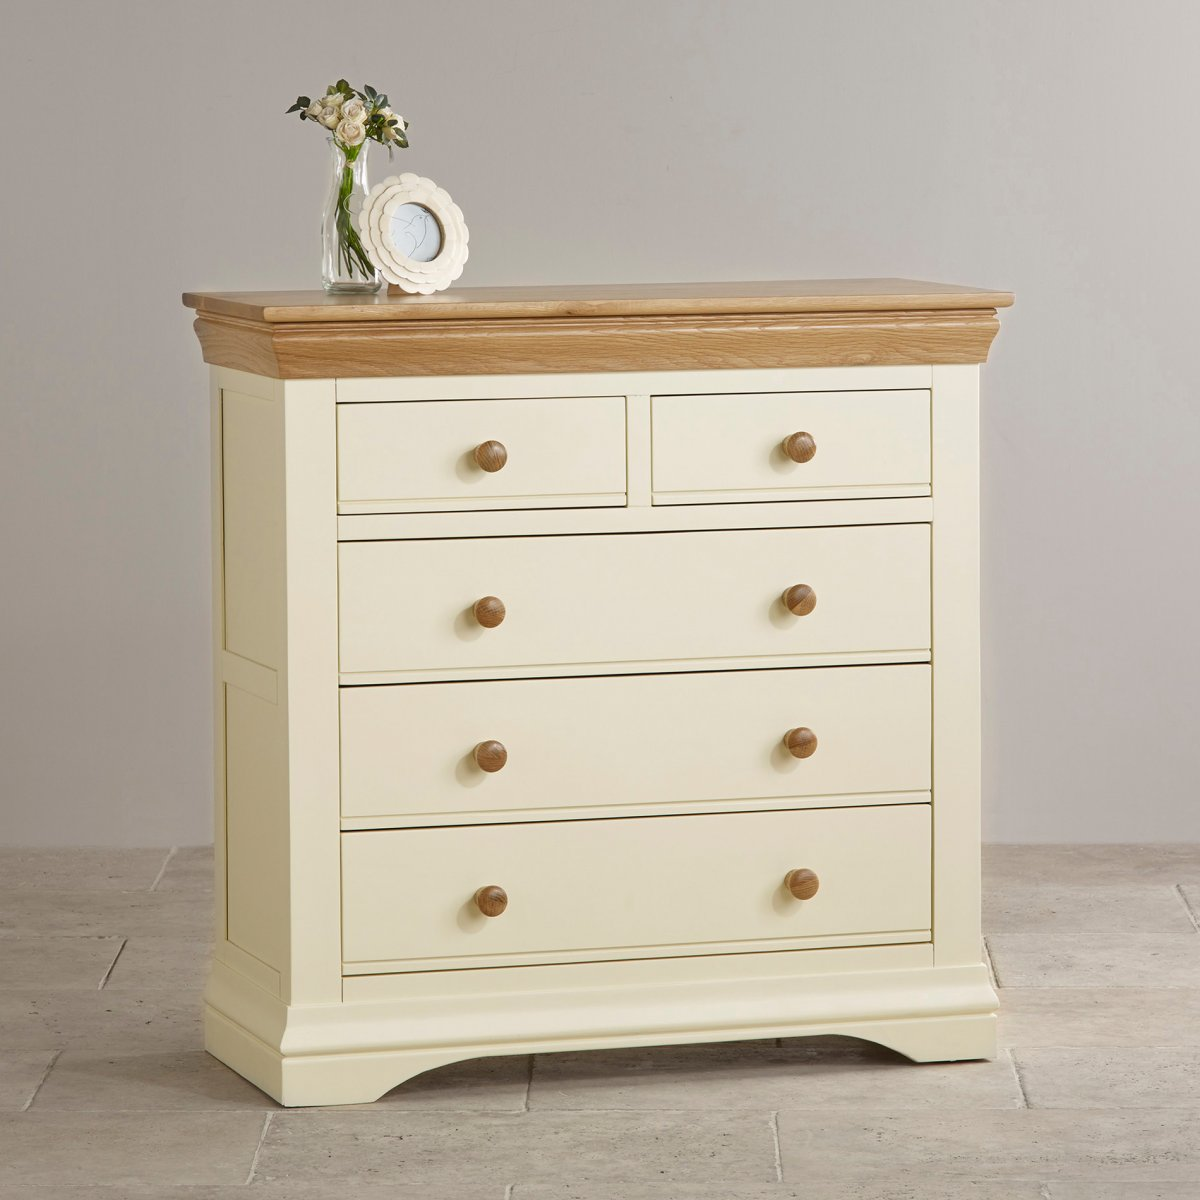 Country Cottage Painted 3+2 Chest Of Drawers In Natural Oak